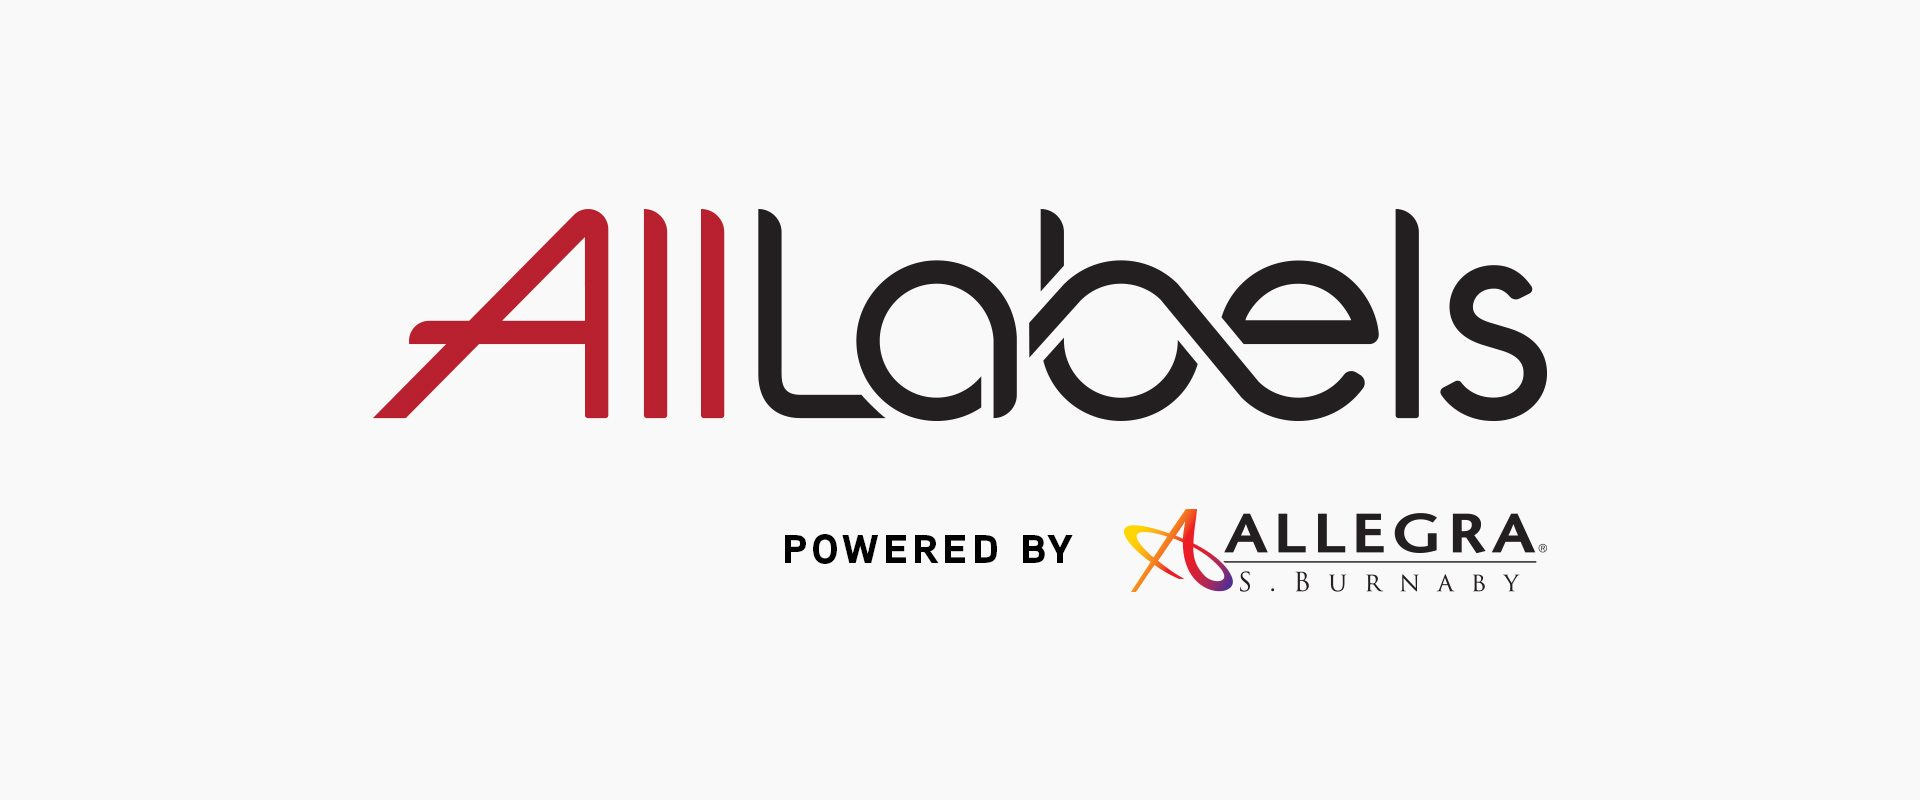 Y5 Creative Case Studies 2017 AllLabels Logo